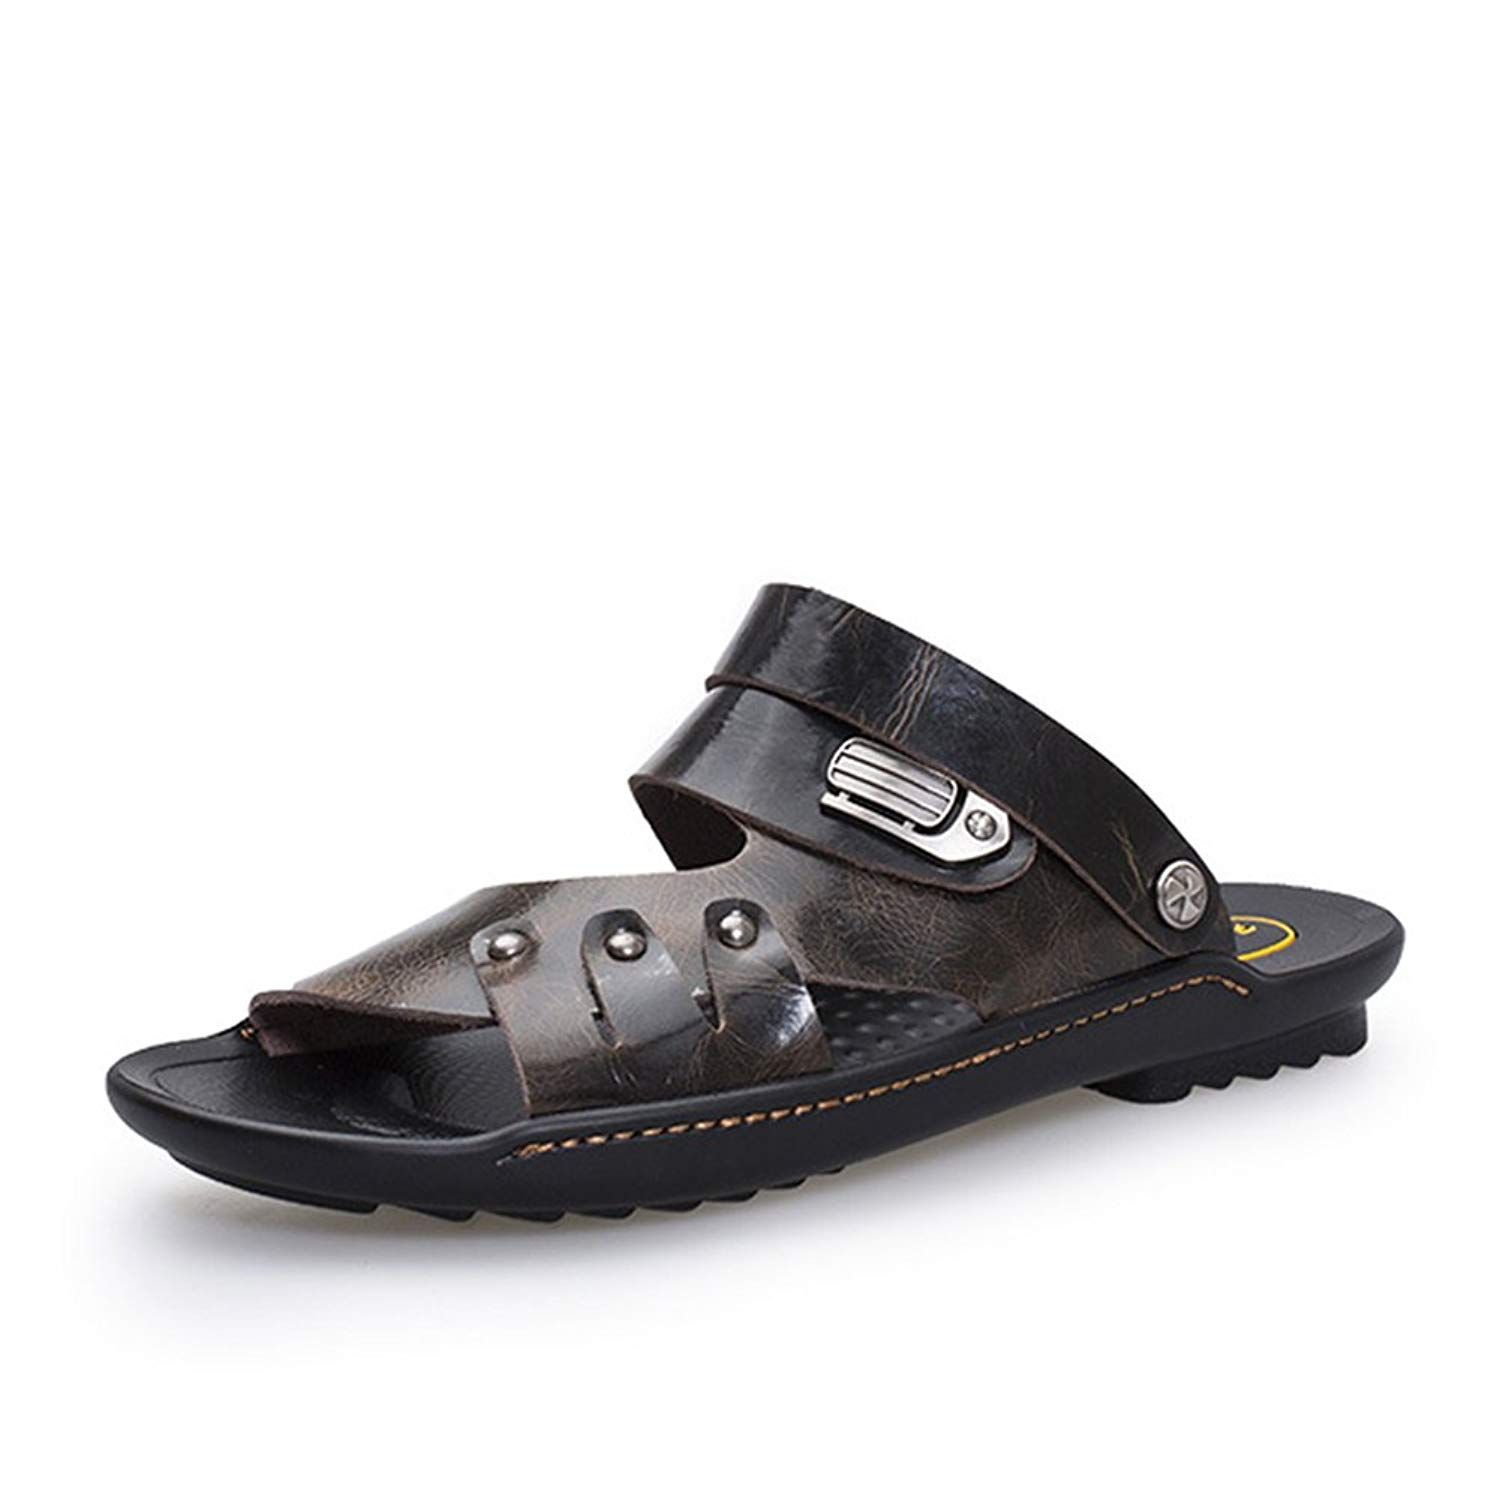 Mobnau Leather Anti-Skid Little Kids Toddler Sandals for Girls